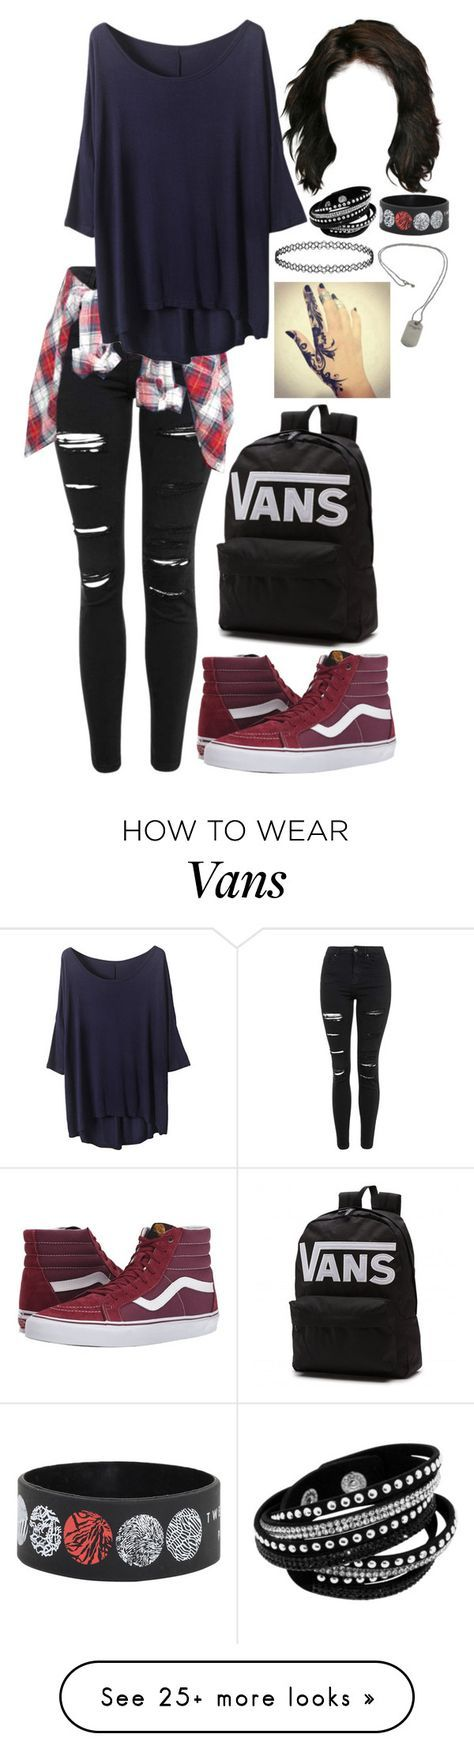 """""""Vans"""" by mati1d on Polyvore featuring Topshop, ASOS, Vans and Tiffany & Co."""